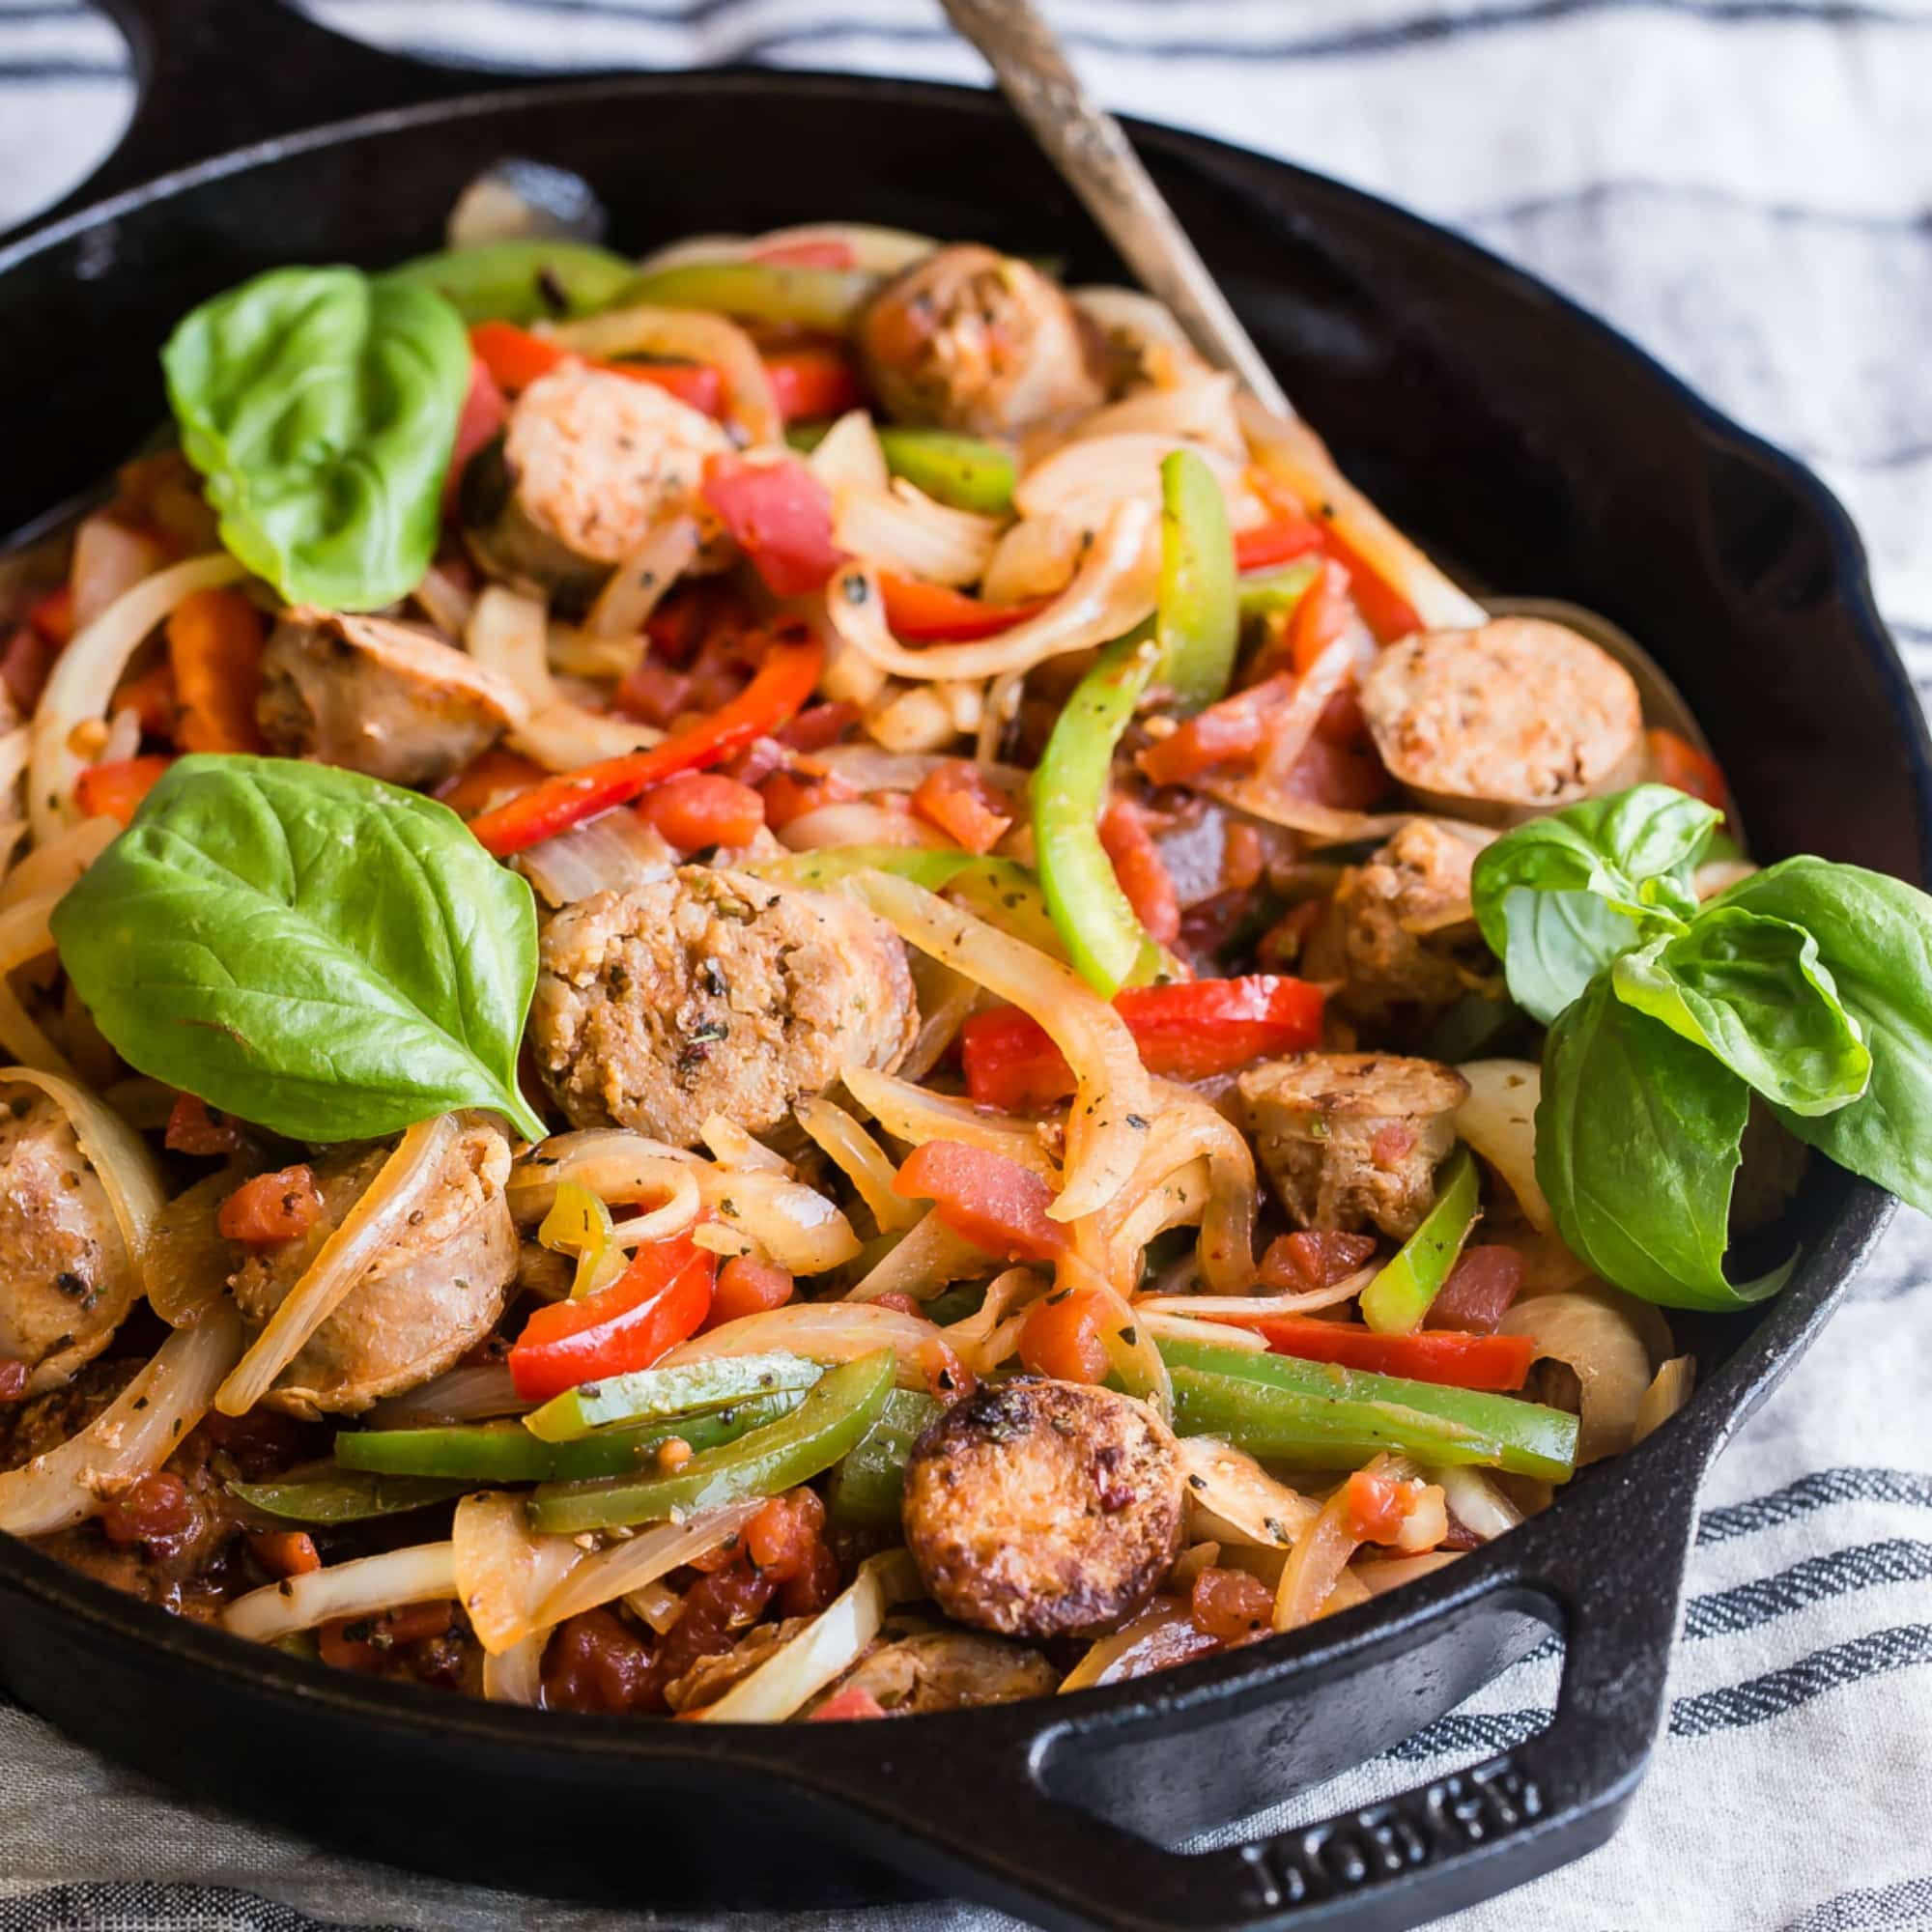 Italian sausage and peppers—it doesn't get any more iconic than this sweet and spicy dish bursting with summer vegetables and juicy Italian sausage. Perfect for big family get togethers or potlucks; slice up some crusty bread and everyone can dish up their own, just the way they like it.